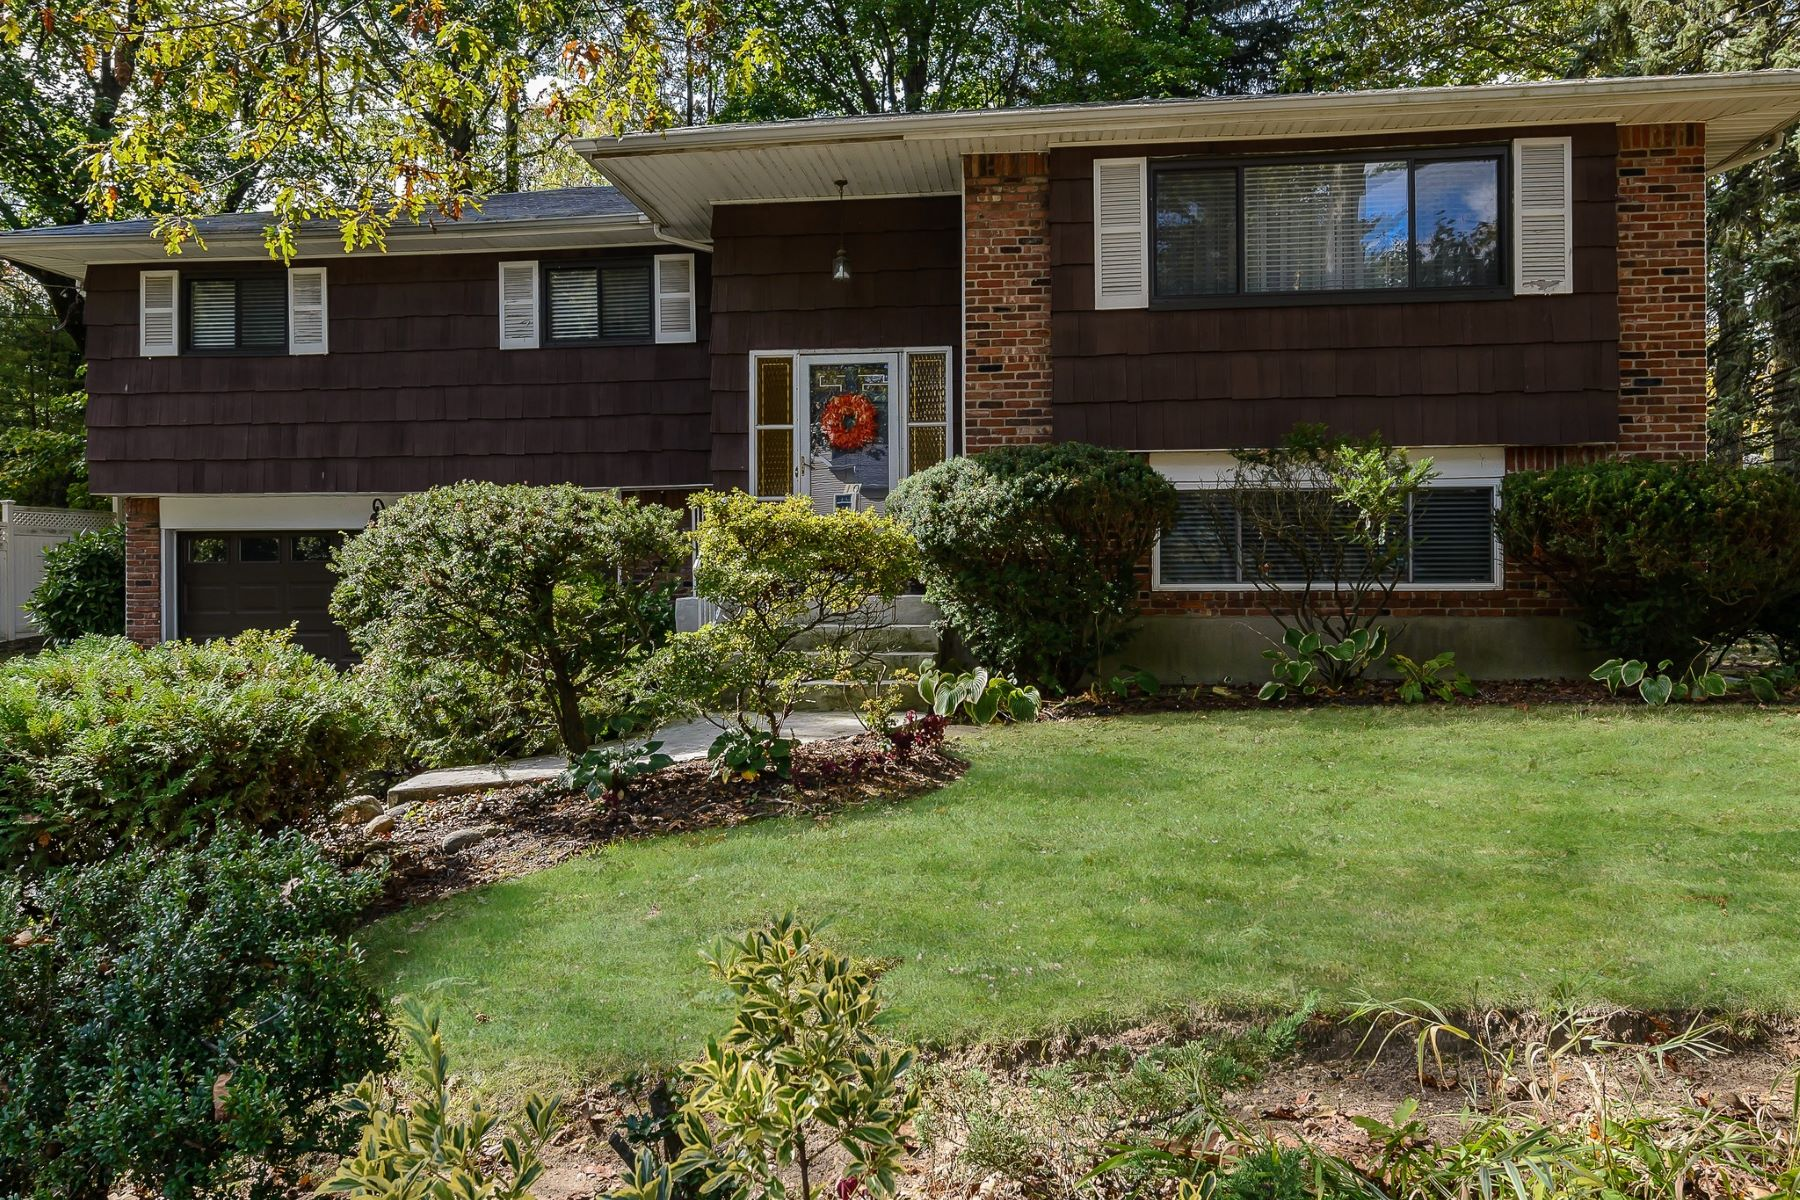 Single Family Home for Sale at 10 Mineola Ave , Roslyn Estates, NY 11576 10 Mineola Ave, Roslyn Estates, New York, 11576 United States